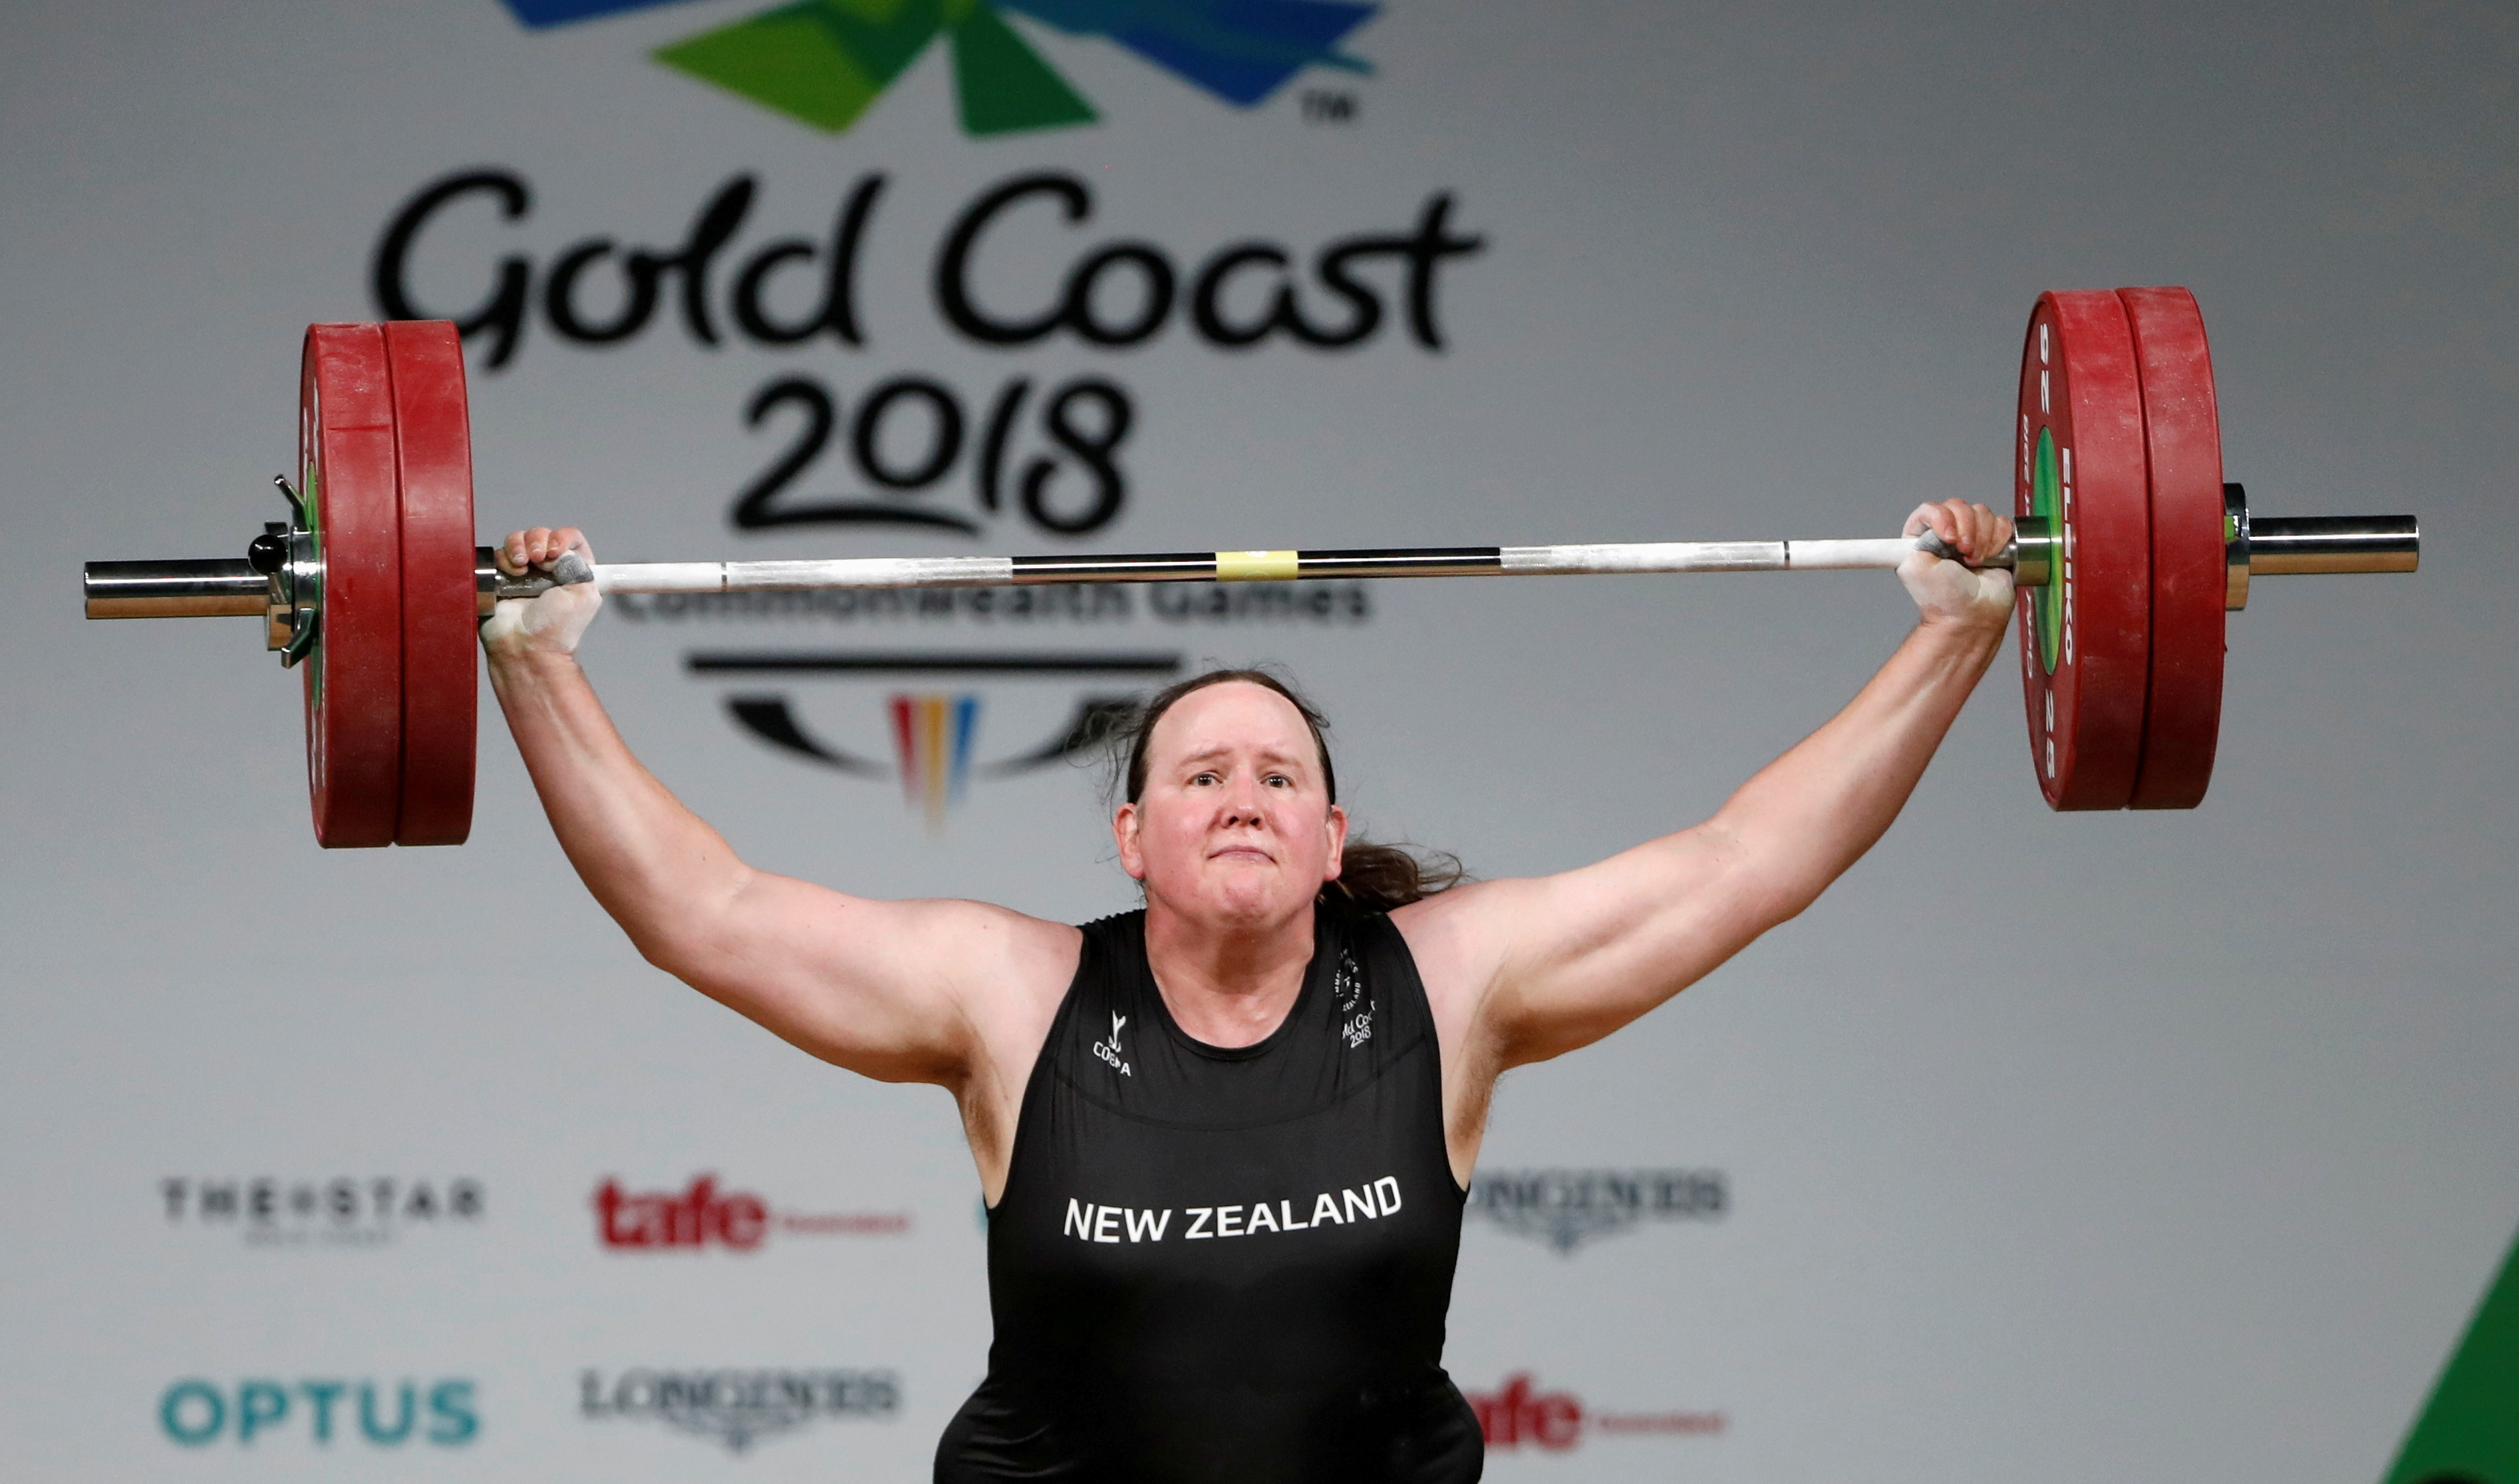 FILE PHOTO: Weightlifting - Gold Coast 2018 Commonwealth Games - Women's +90kg - Final - Carrara Sports Arena 1 - Gold Coast, Australia - April 9, 2018. Laurel Hubbard of New Zealand competes. REUTERS/Paul Childs/File Photo/File Photo